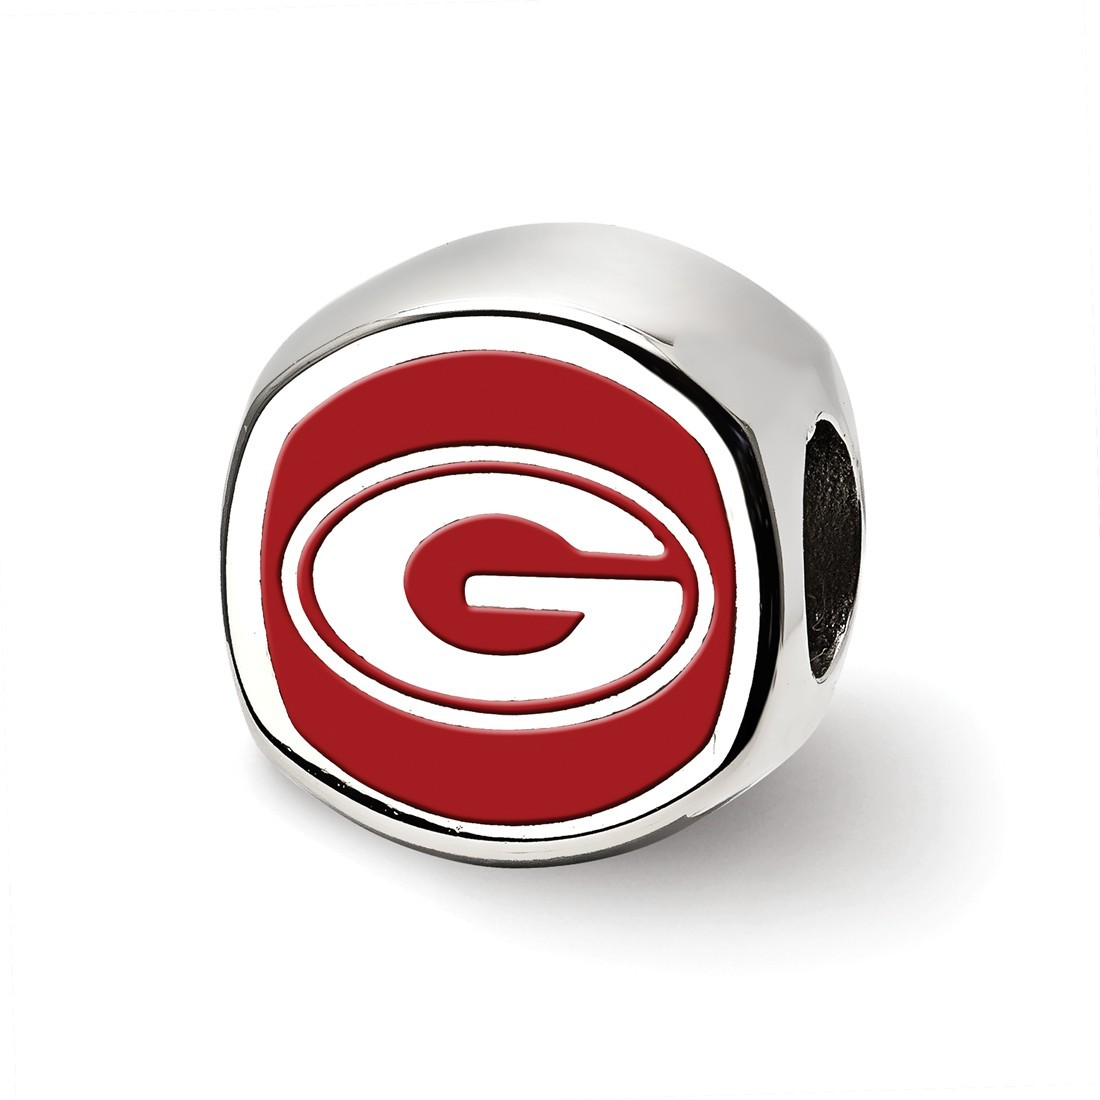 Beads Company Logo: Sterling Silver University Of Georgia Cushion Shaped Logo